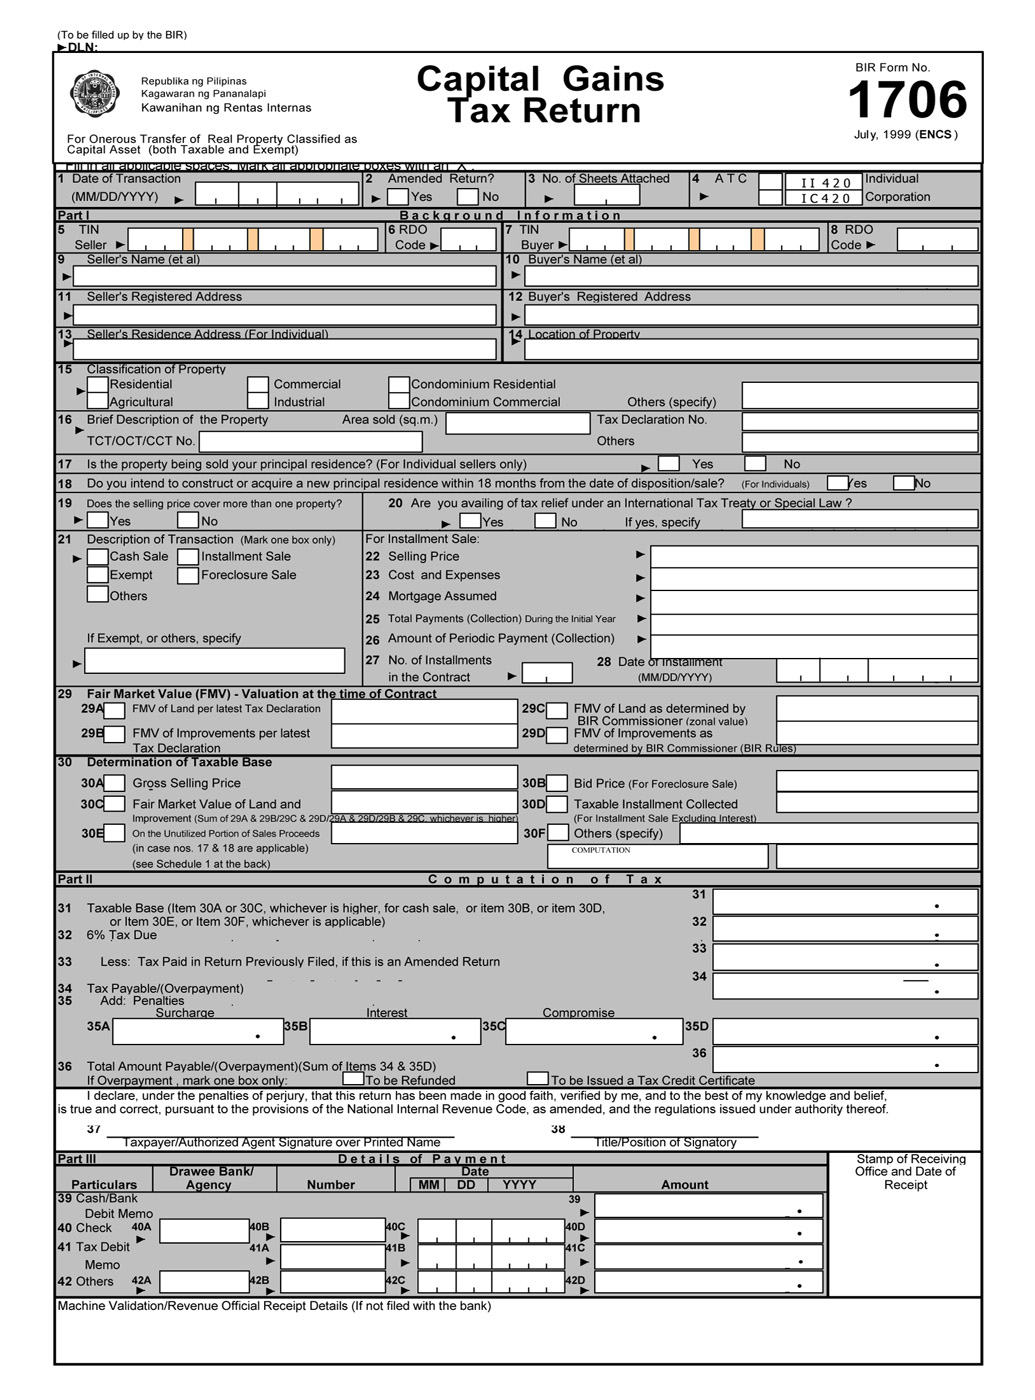 busapcom: BIR Form 1706 Download